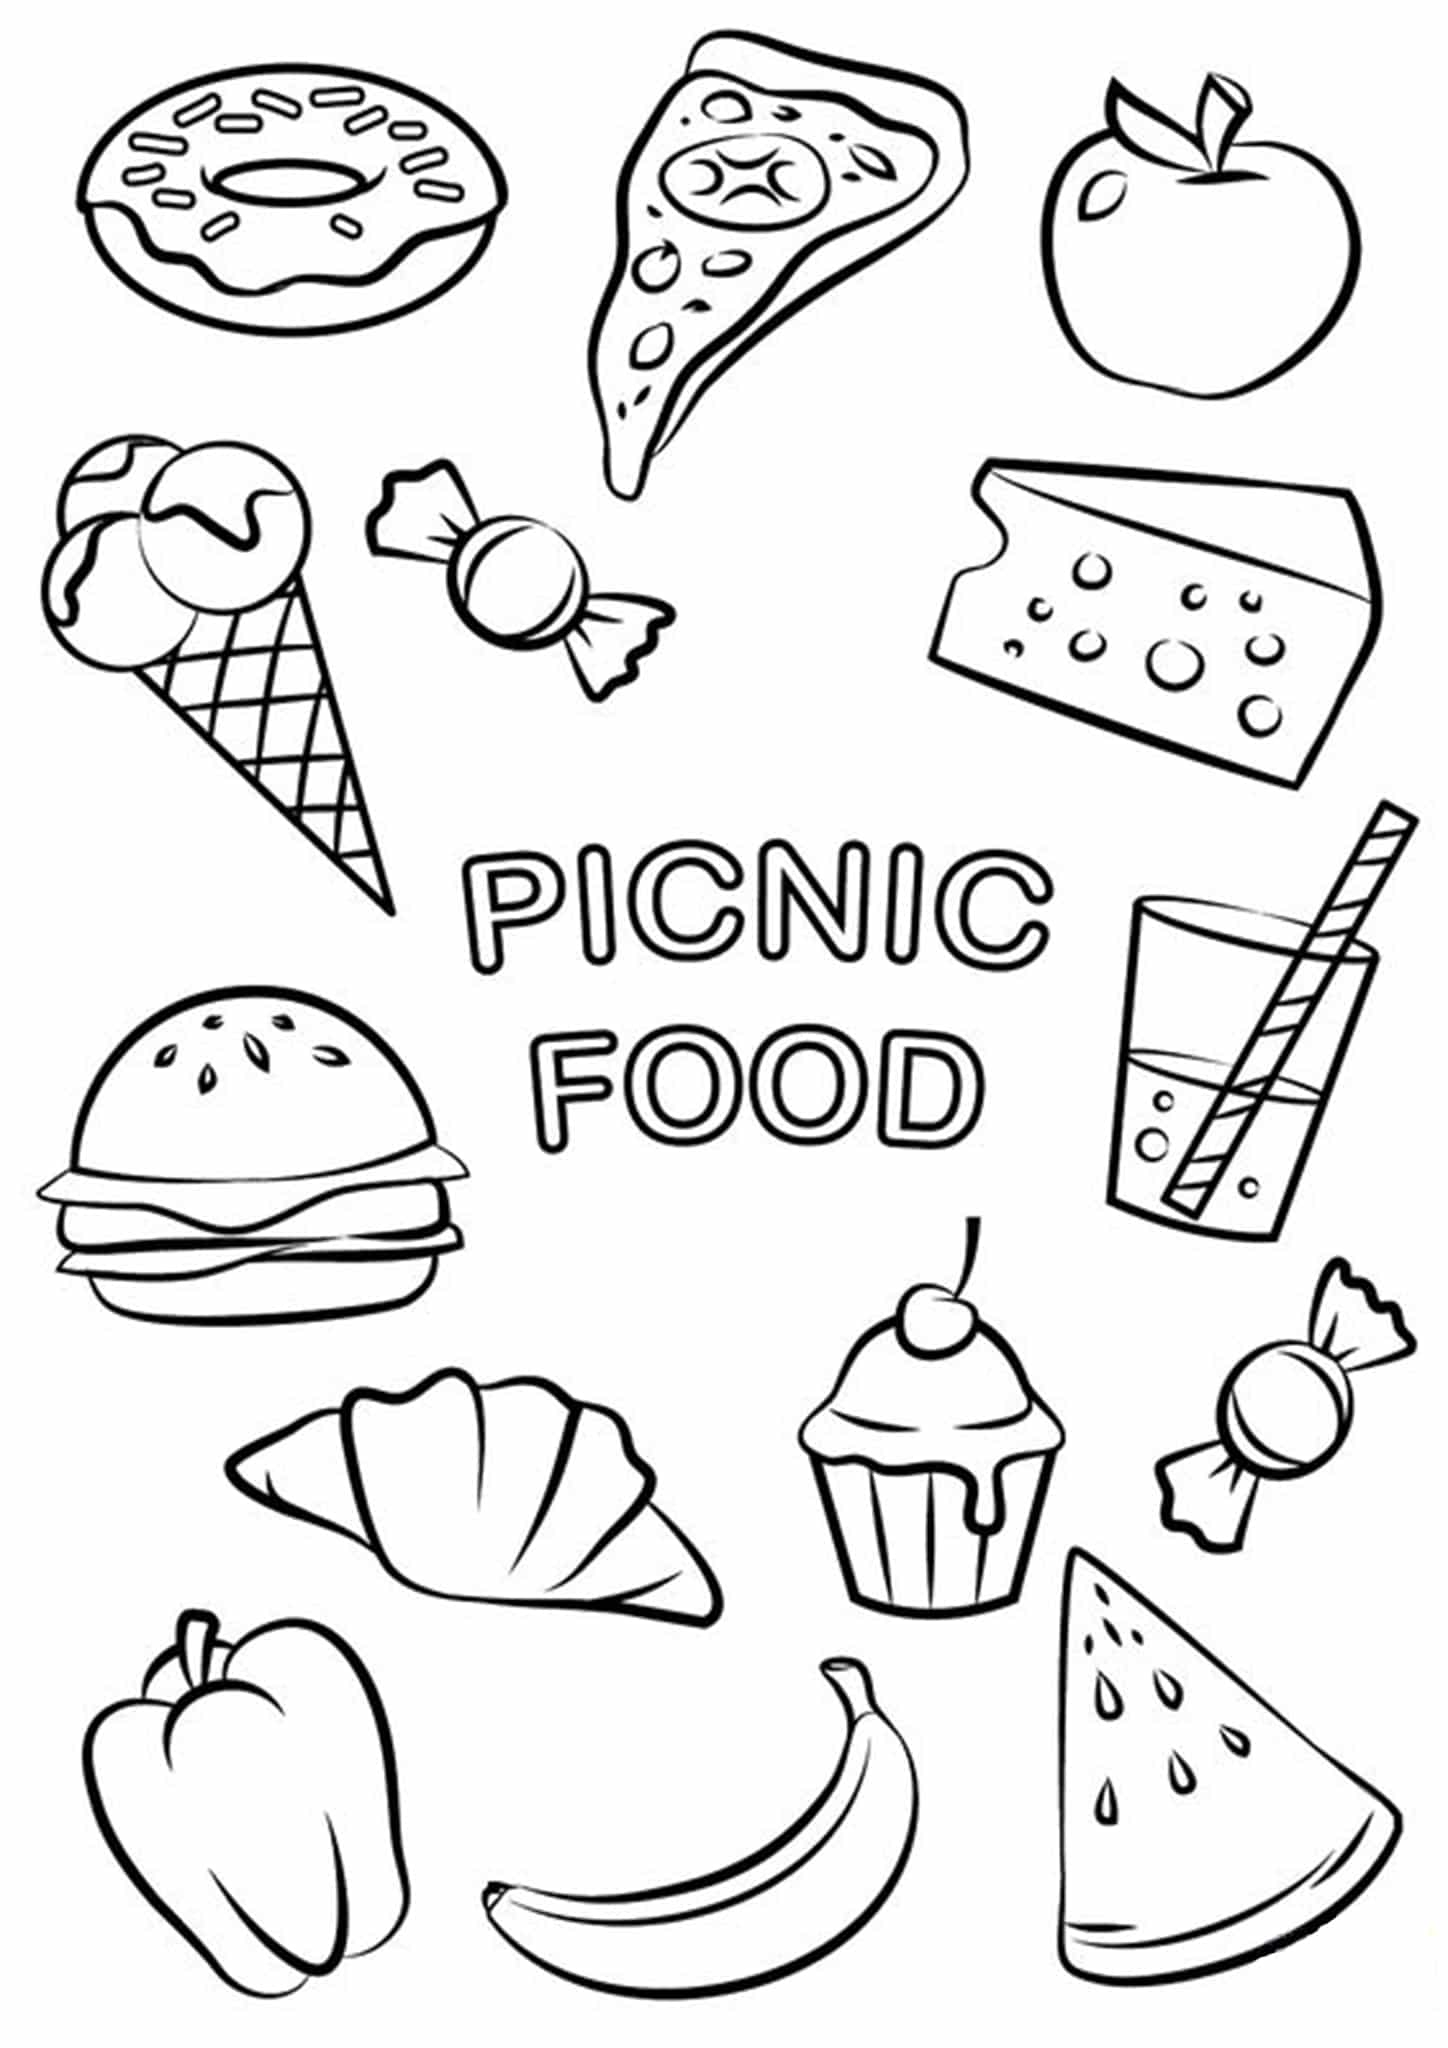 coloring pages of food free printable food coloring pages for kids cool2bkids food pages coloring of